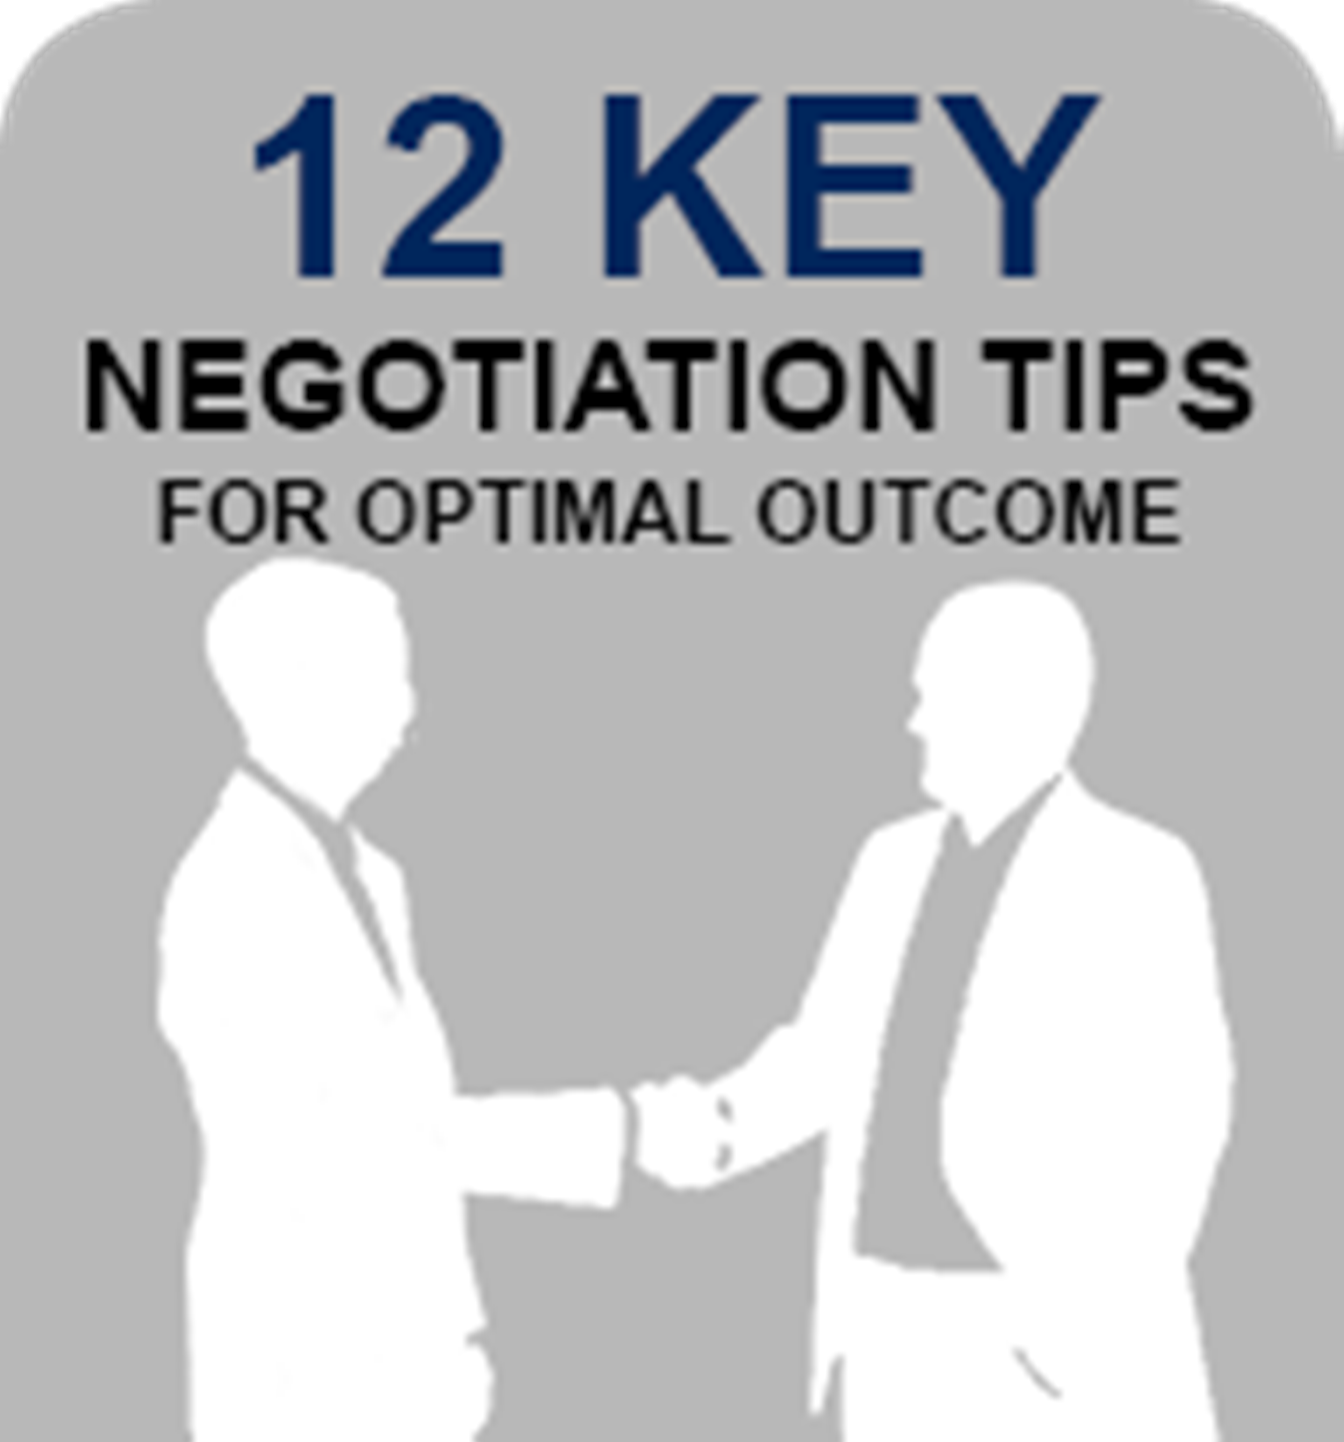 Tech M&A Monthly: M&A Negotiation Tips #9 & 10